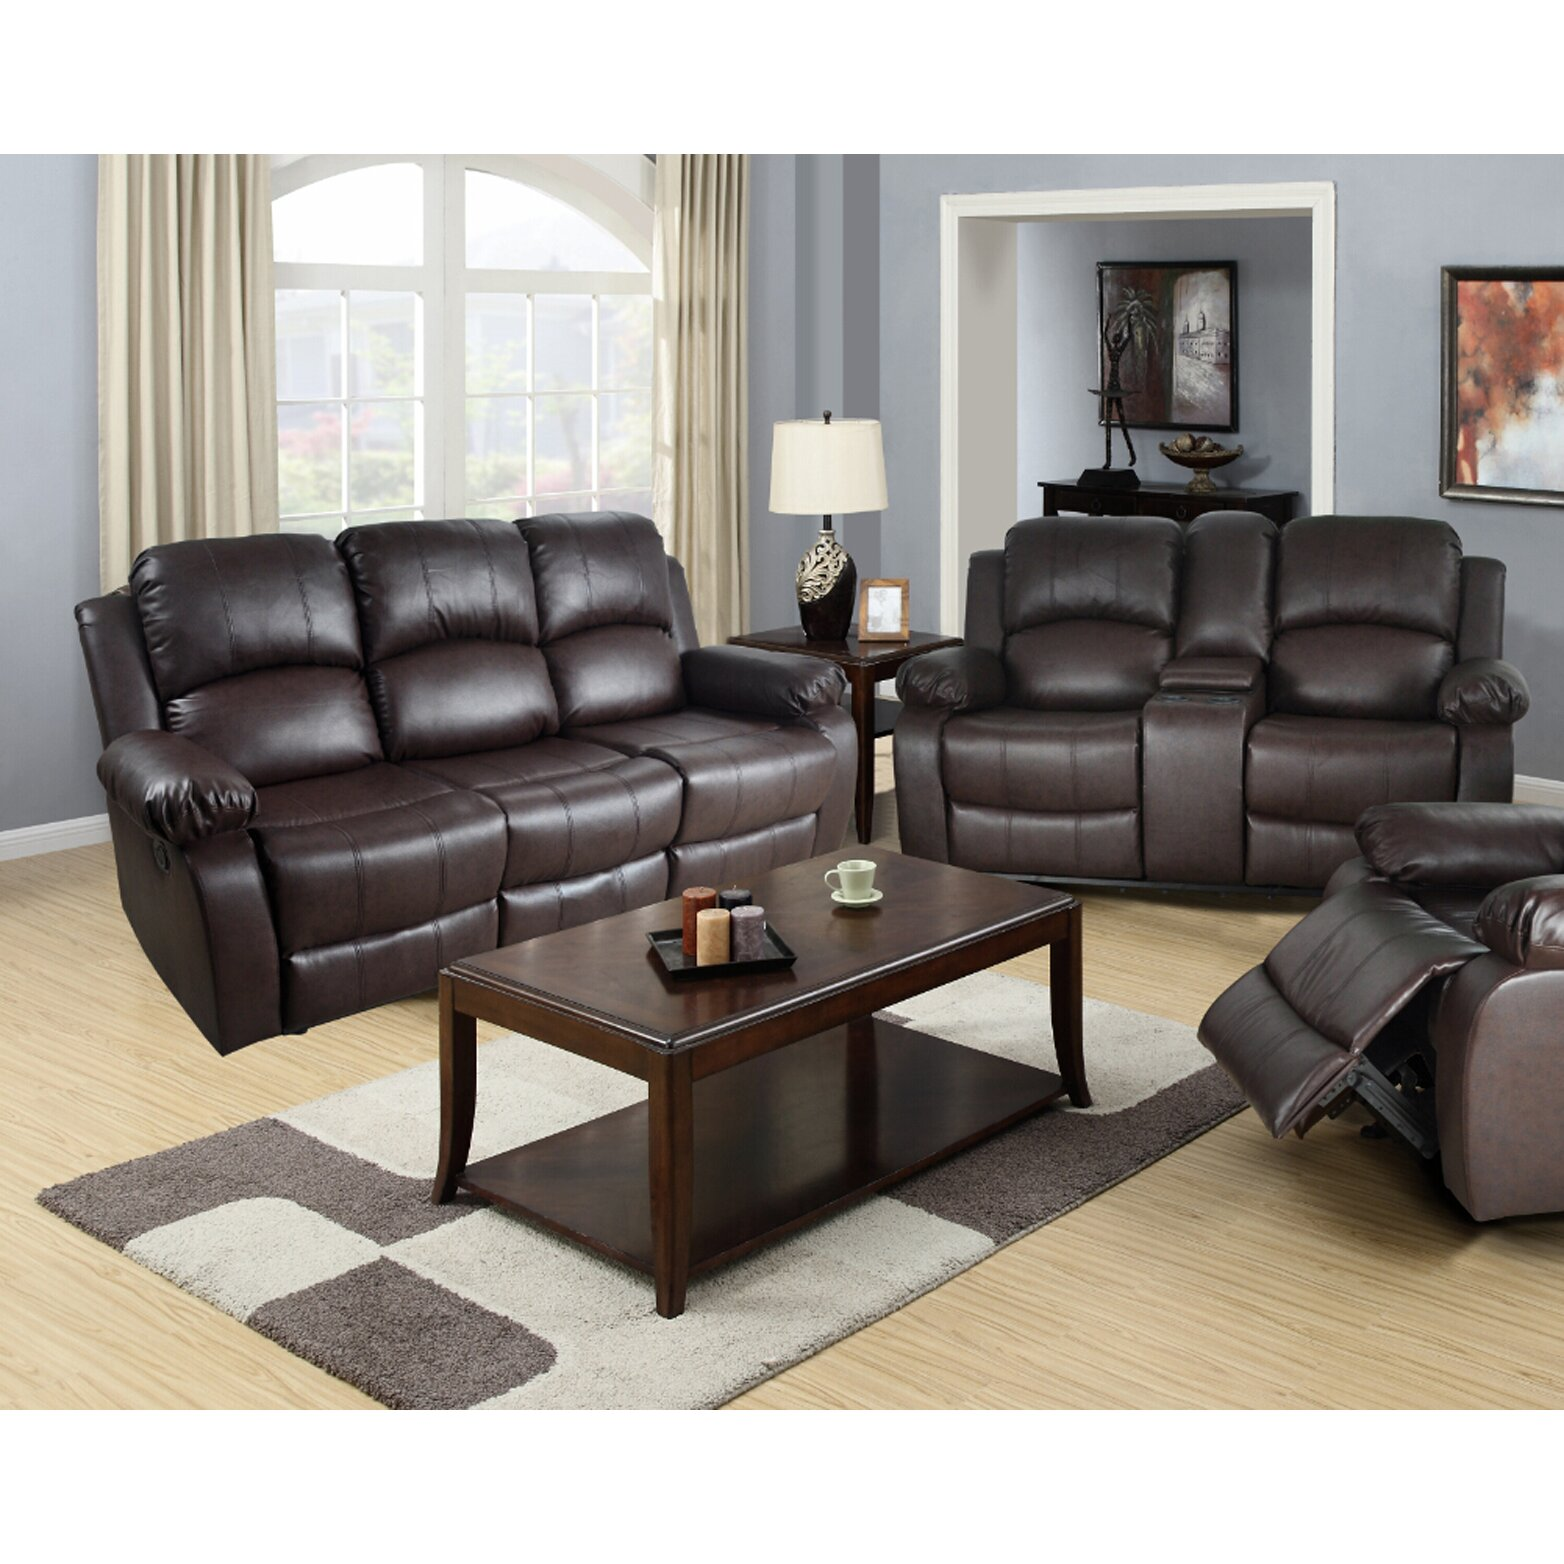 Mayday 2 piece leather reclining living room set